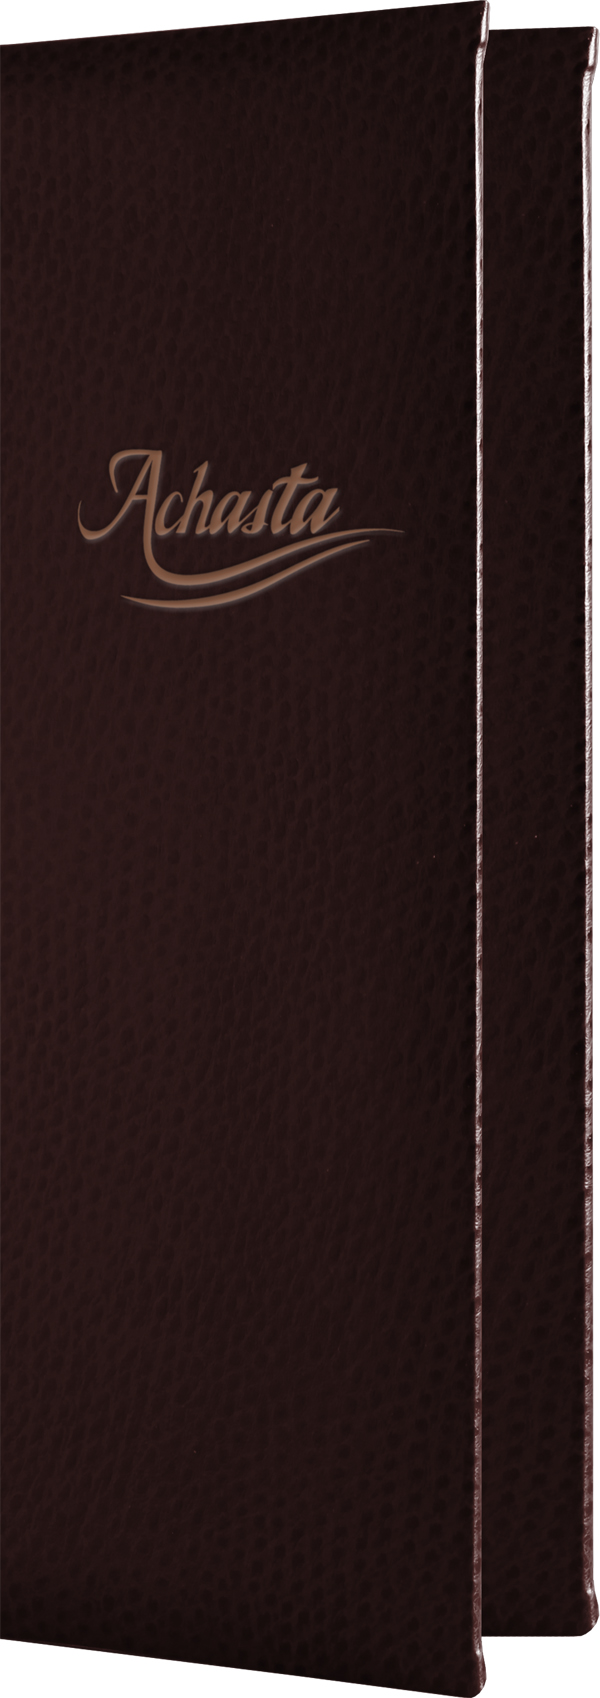 Chesterfield Golf Clubhouse Menu Covers are perfect for country clubs and golf venues.